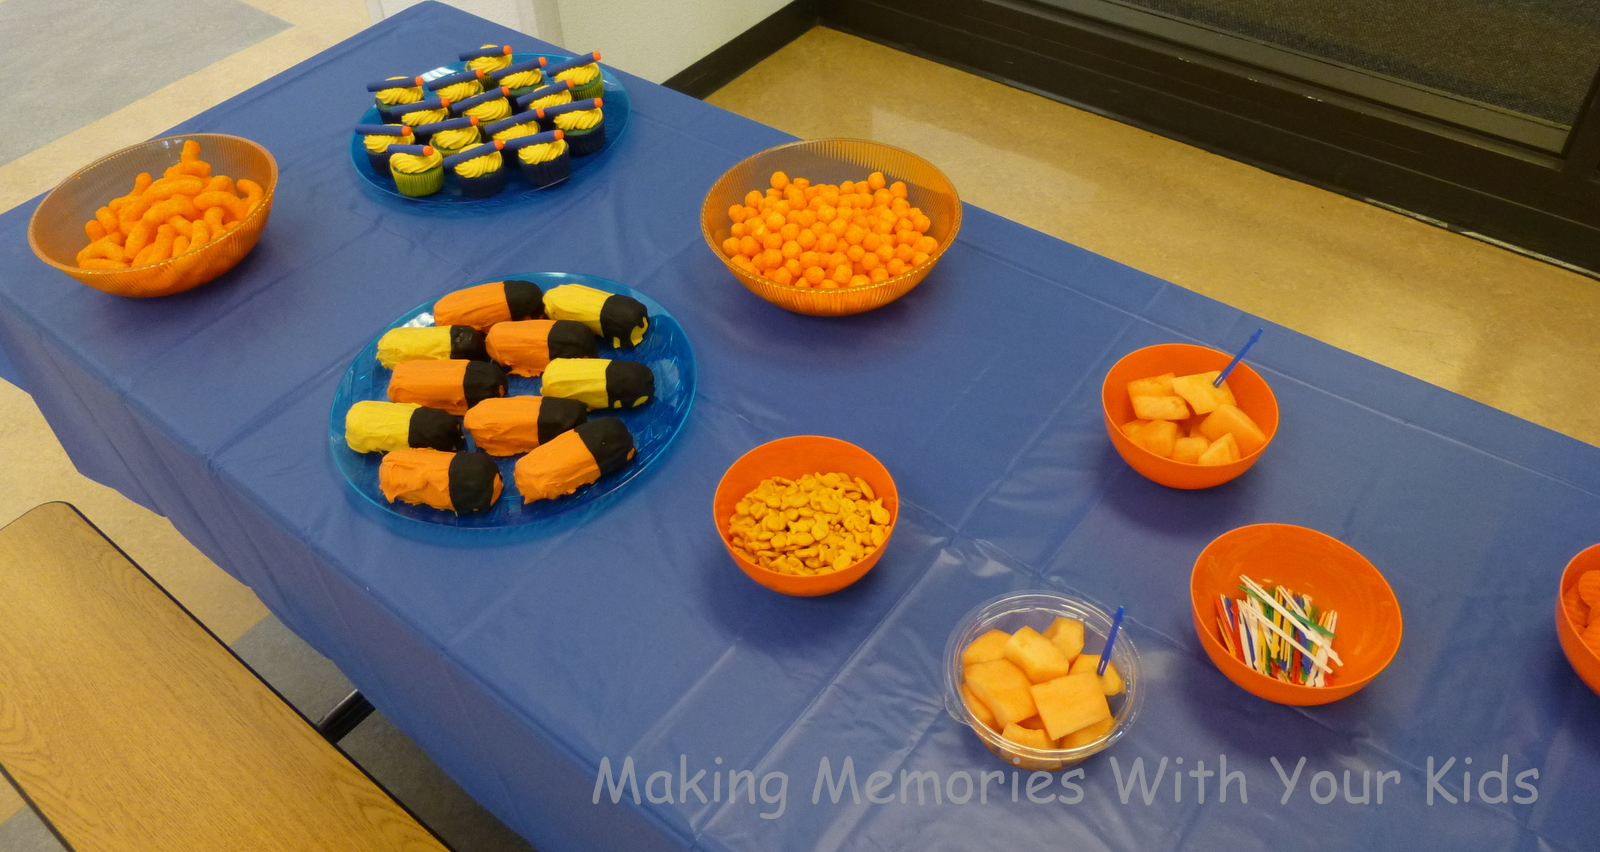 Nerf Birthday Party - Making Memories With Your Kids